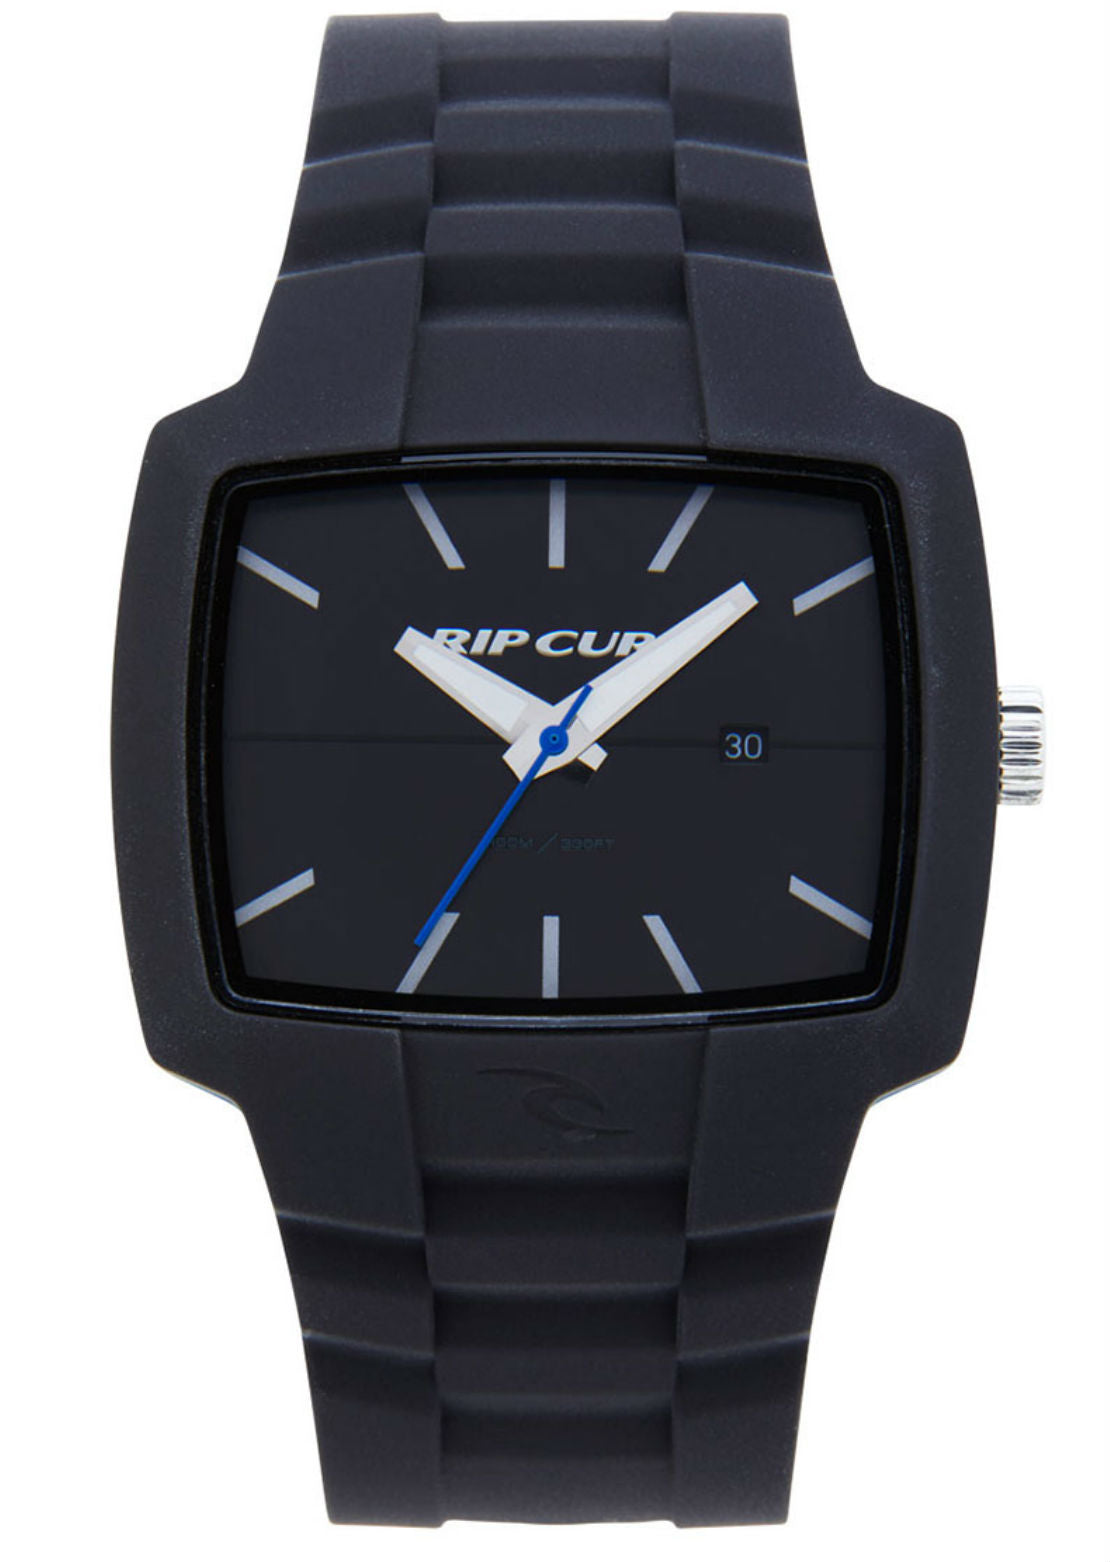 Ripcurl Men's Tour XL Surf Watch